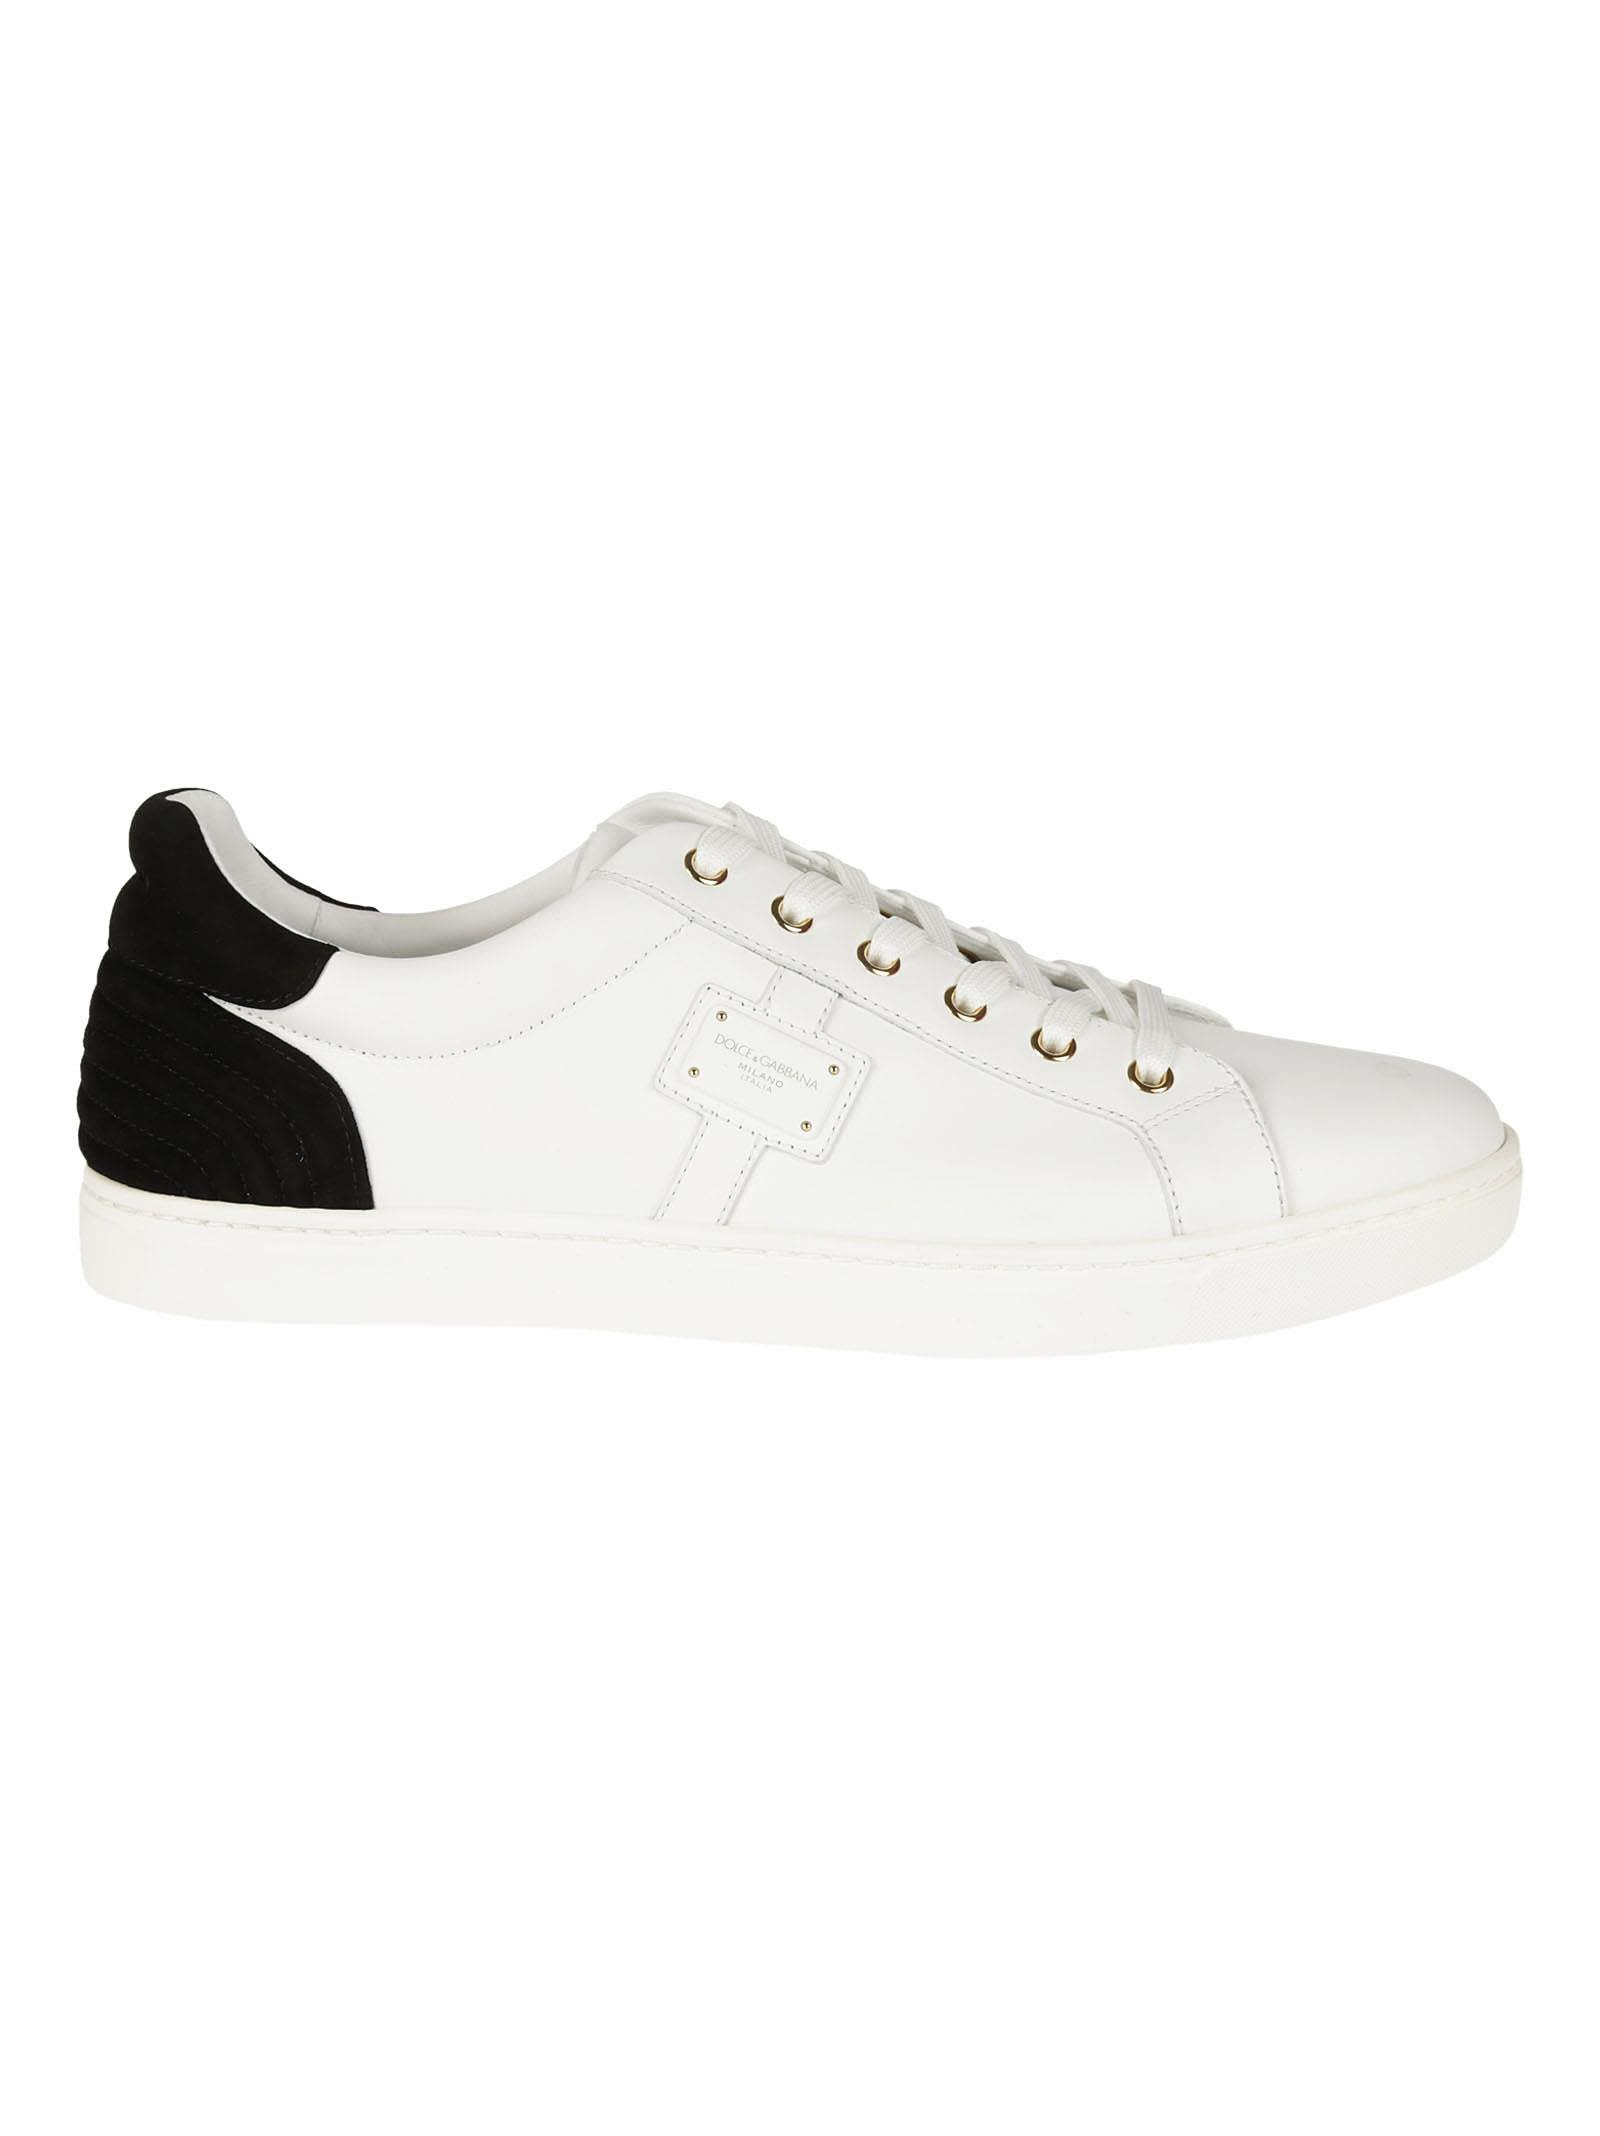 Dolce & Gabbana London Sneakers